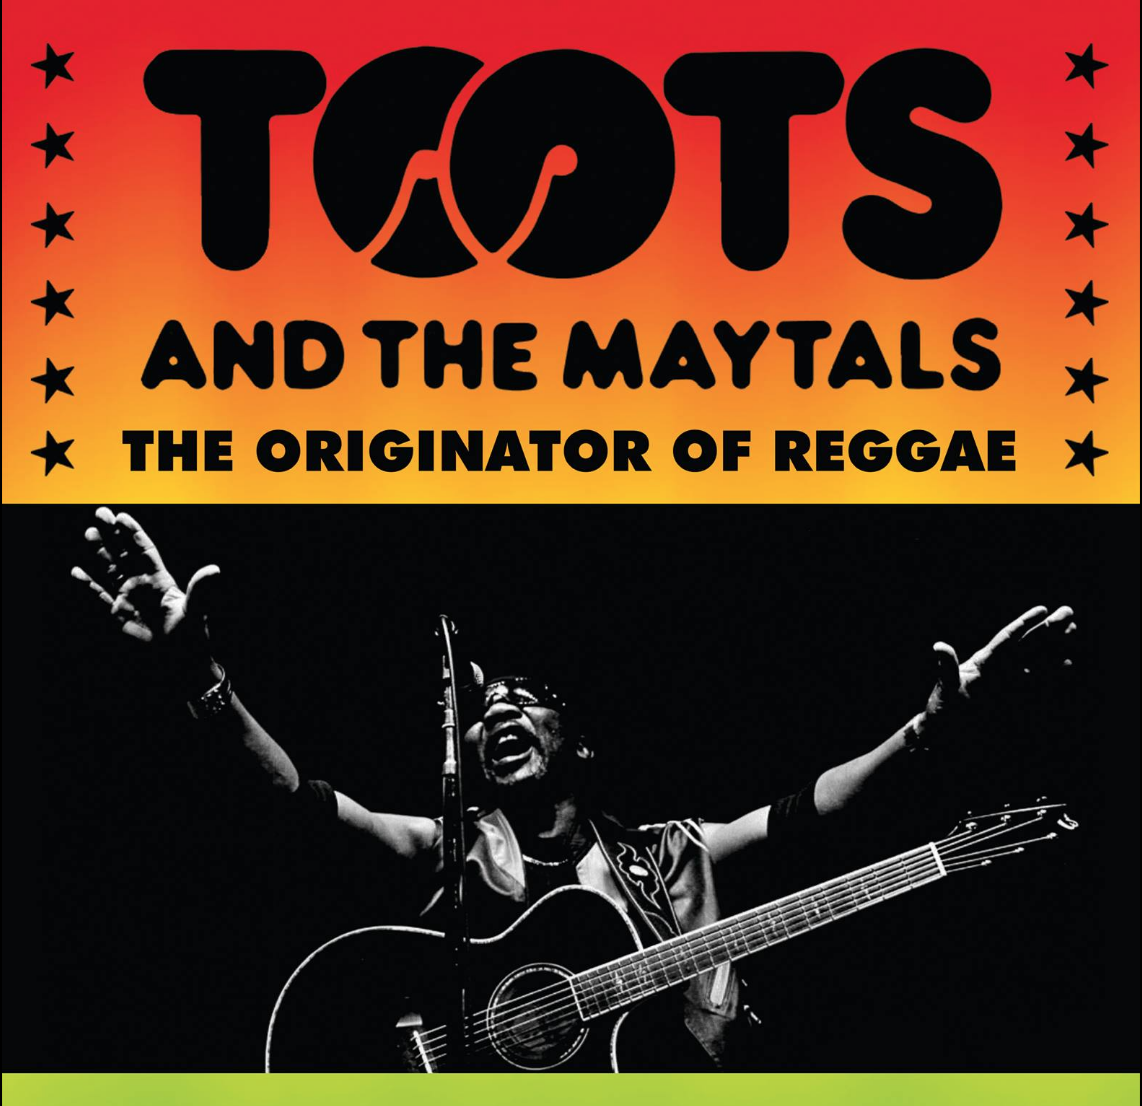 Toots and Maytals Event Image